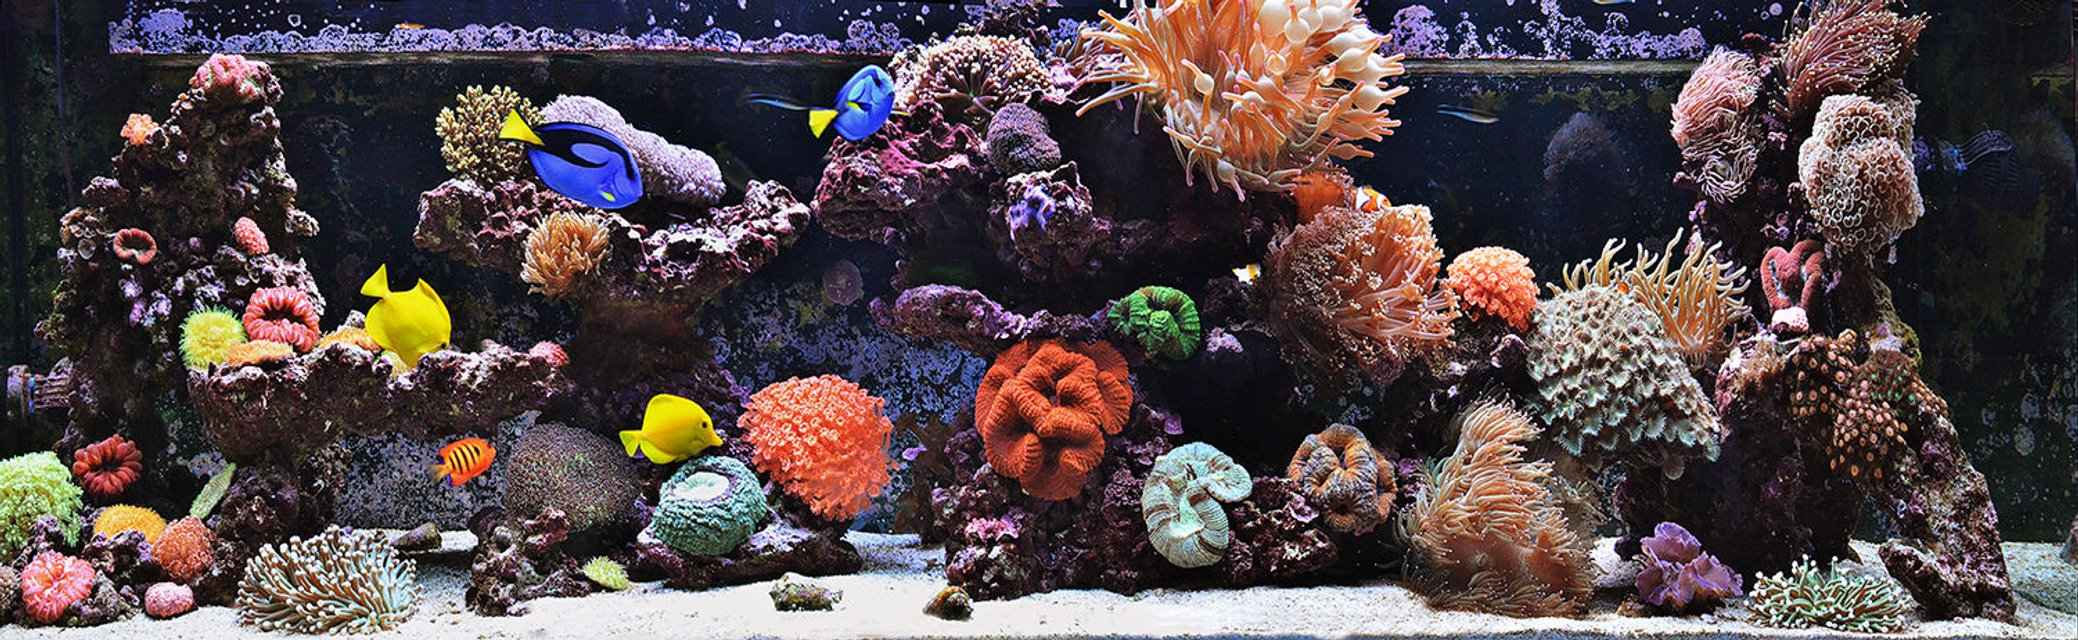 Rated #1: 240 Gallons Reef Tank - 240g Mixed Reef Tank